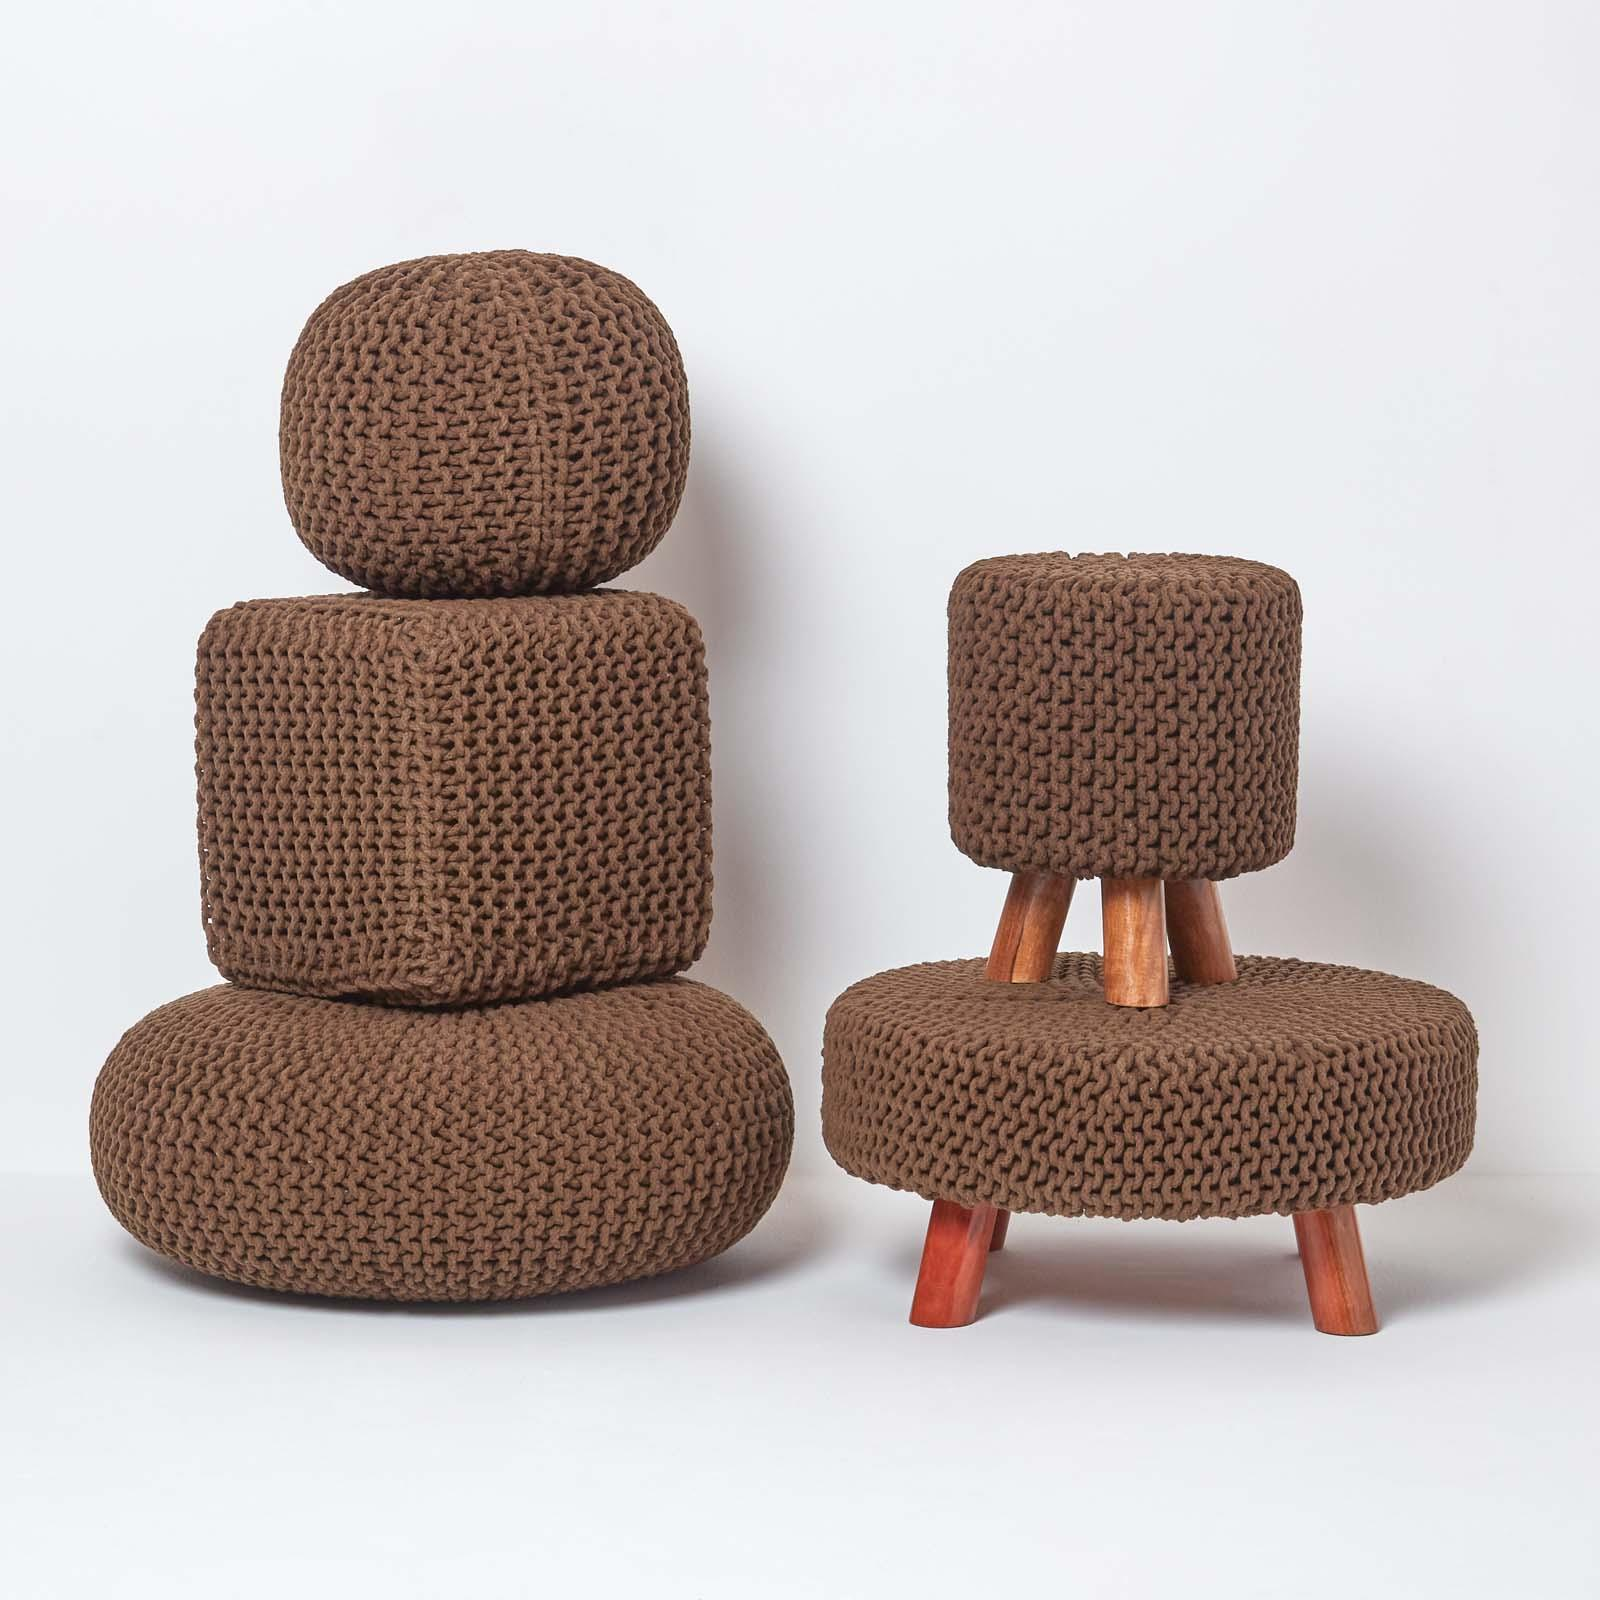 Hand-Knitted-100-Cotton-Pouffes-Round-Sphere-Or-Cube-Square-Chunky-Footstools thumbnail 32